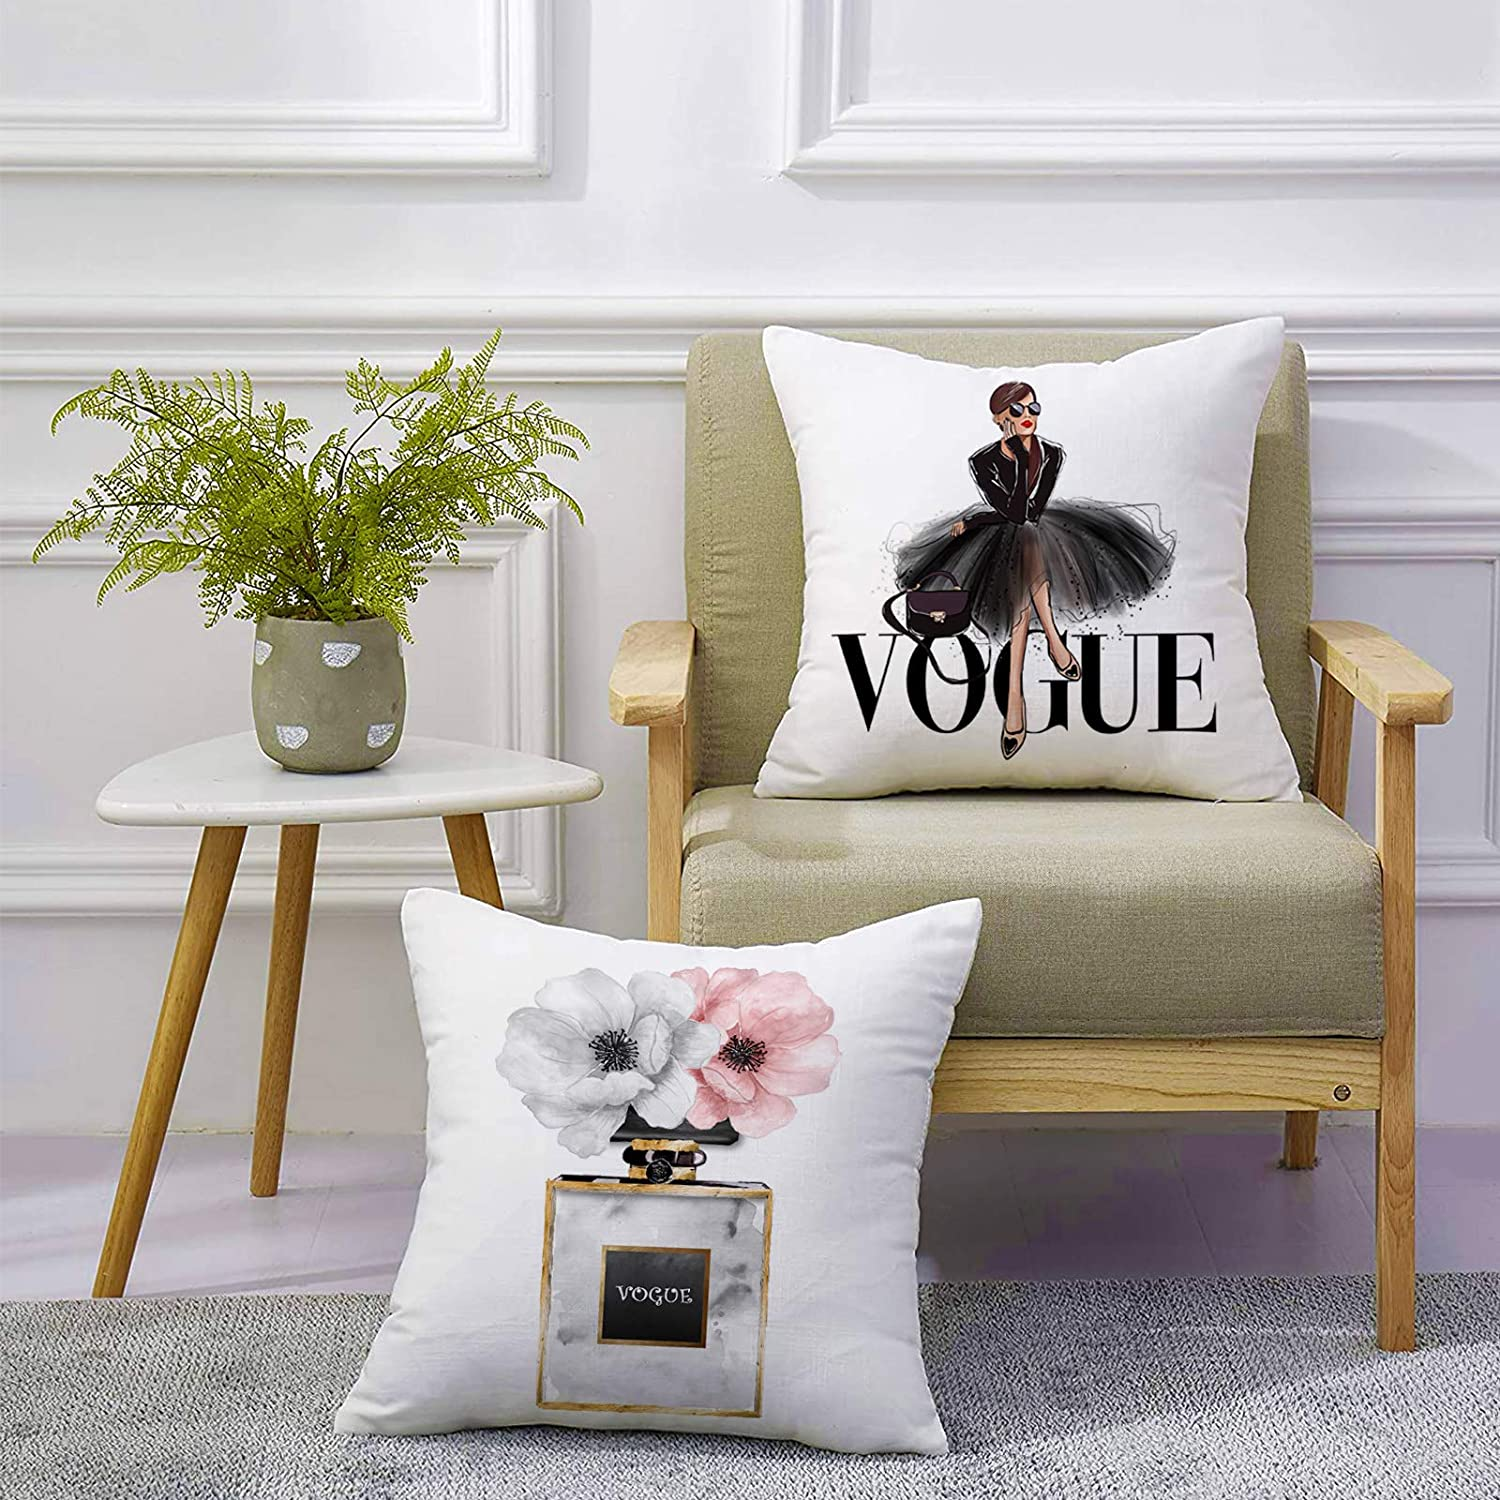 FCOZM Fashion Women Decorative Pillow Covers 18x18 Gold Perfume Bottle with Pink Flower Throw Pillow Covers for Couch Black and White Square Velvet Pillow Cases Teen Girl Women Bedroom Decor (02)